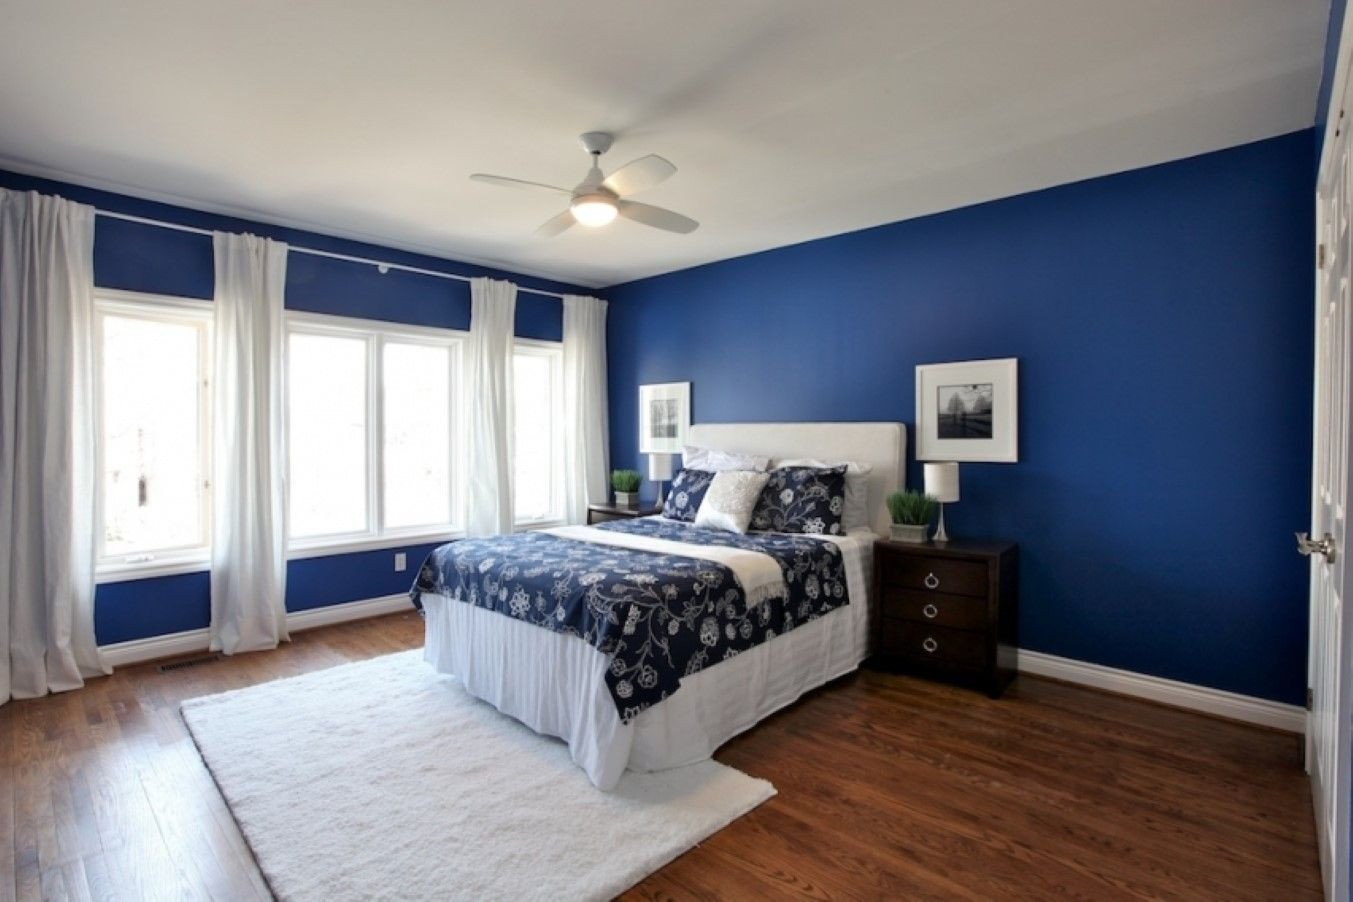 Blue and White Bedroom Ideas Elegant Image Result for Navy Blue and White Boys Room